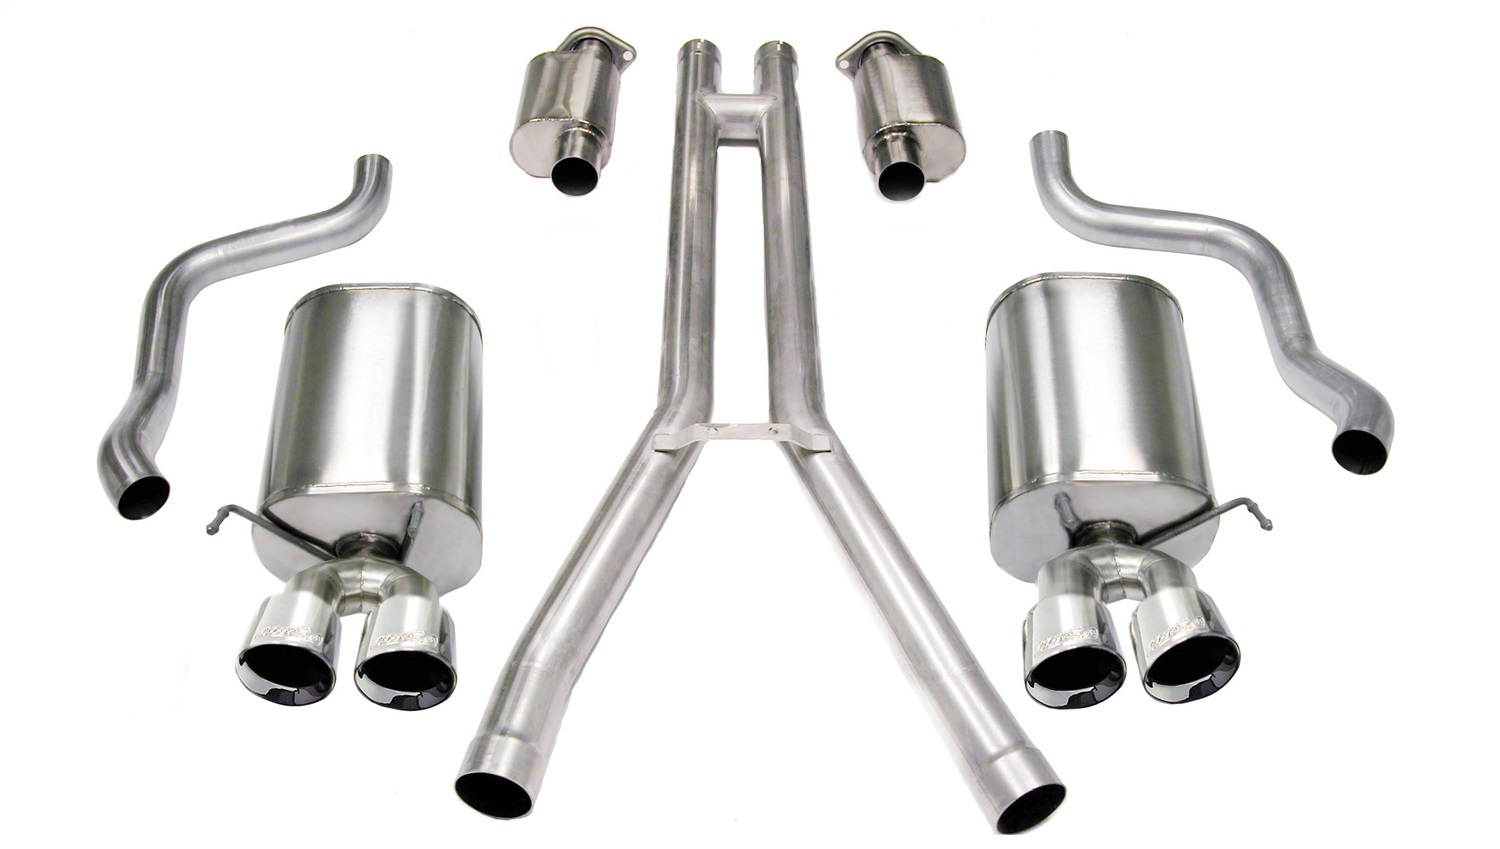 Corsa Performance 14156 Sport Cat-Back Exhaust System Fits 04-08 XLR